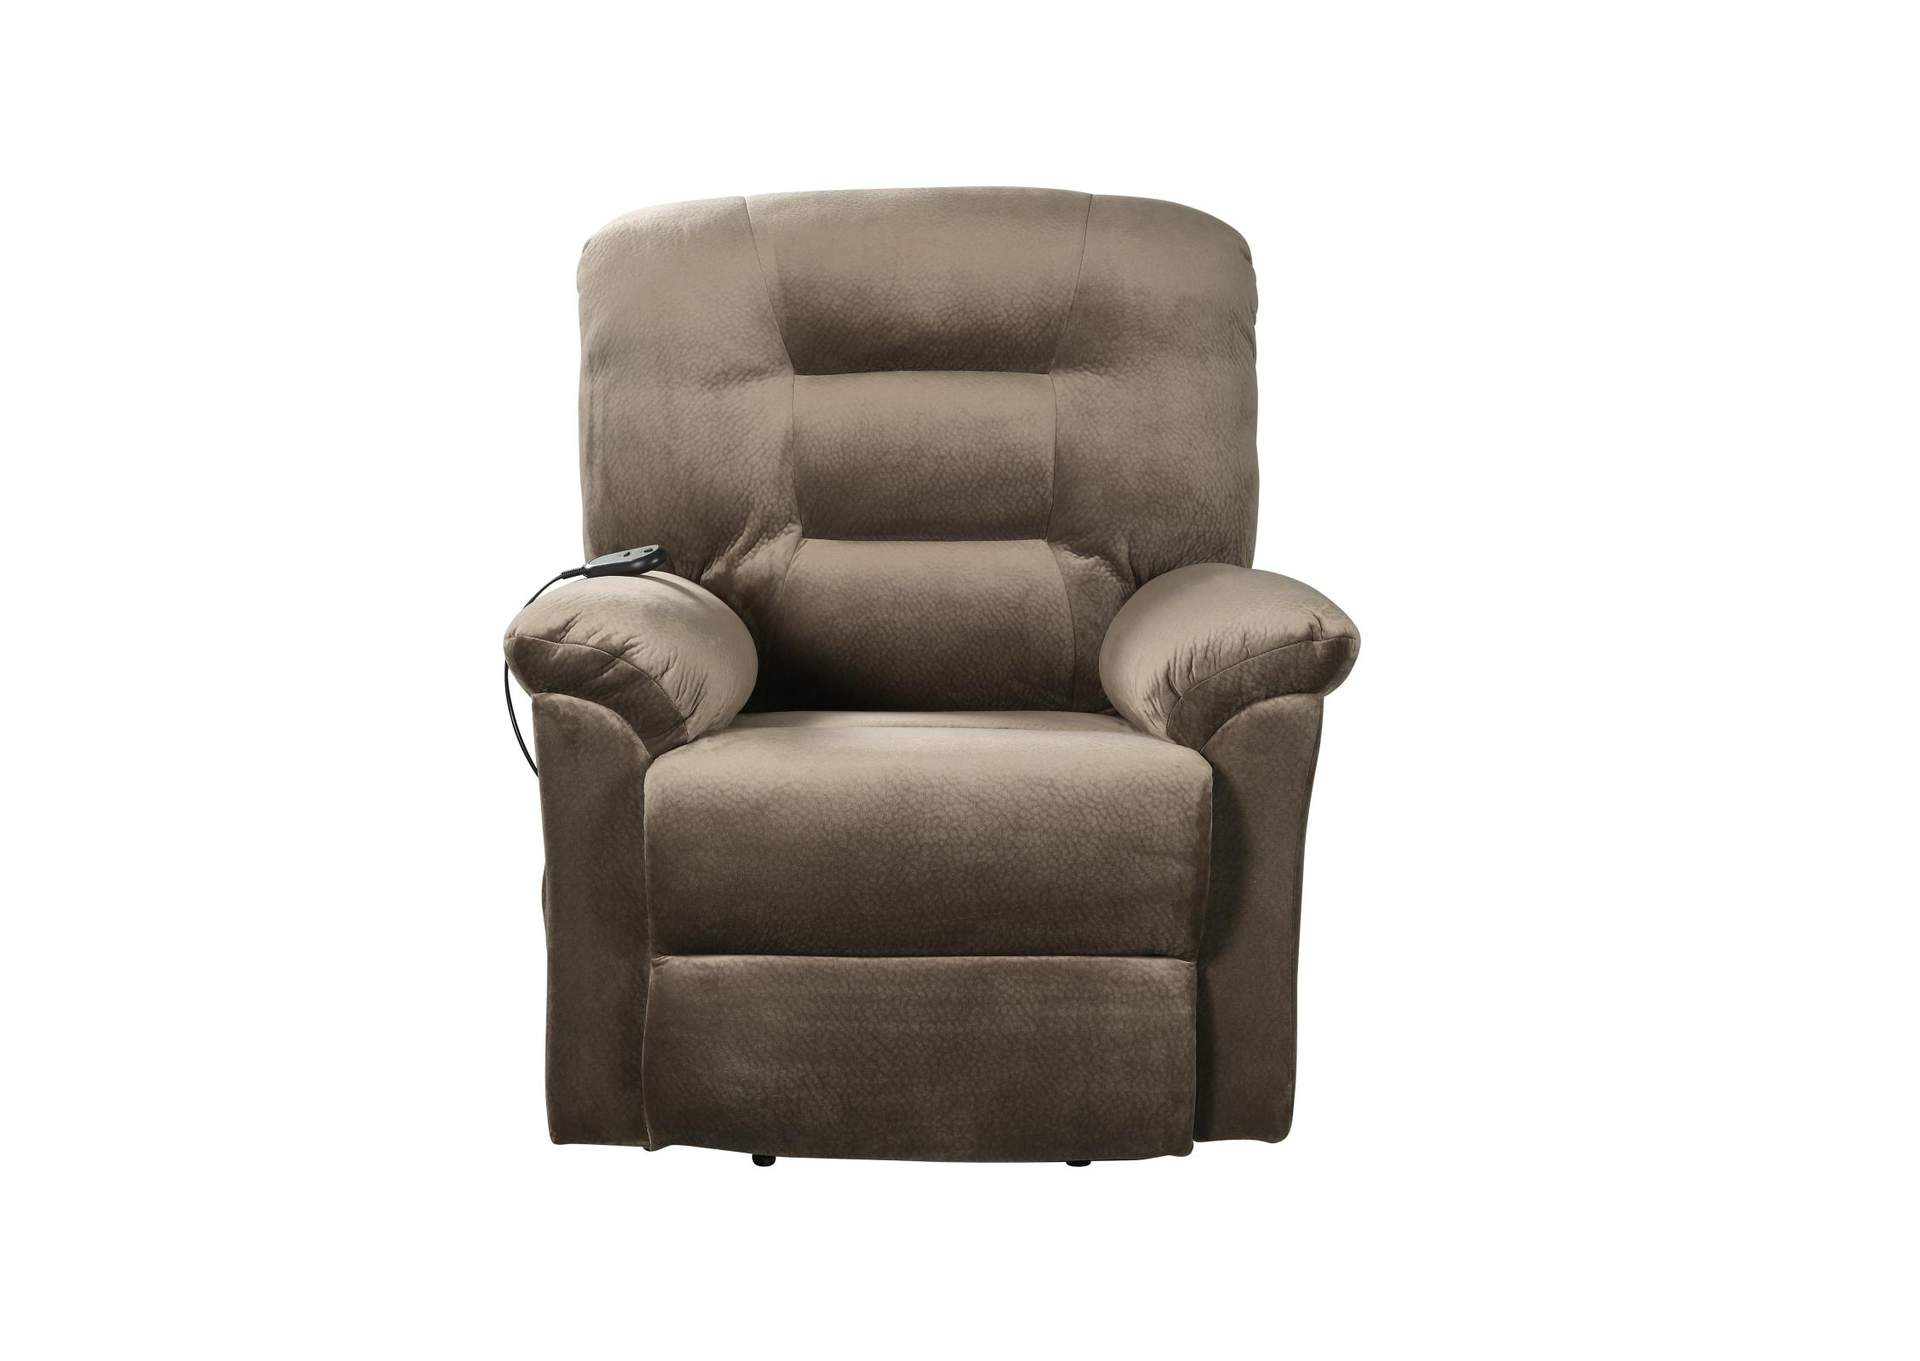 Taupe Casual Brown Sugar Power Lift Recliner,Coaster Furniture